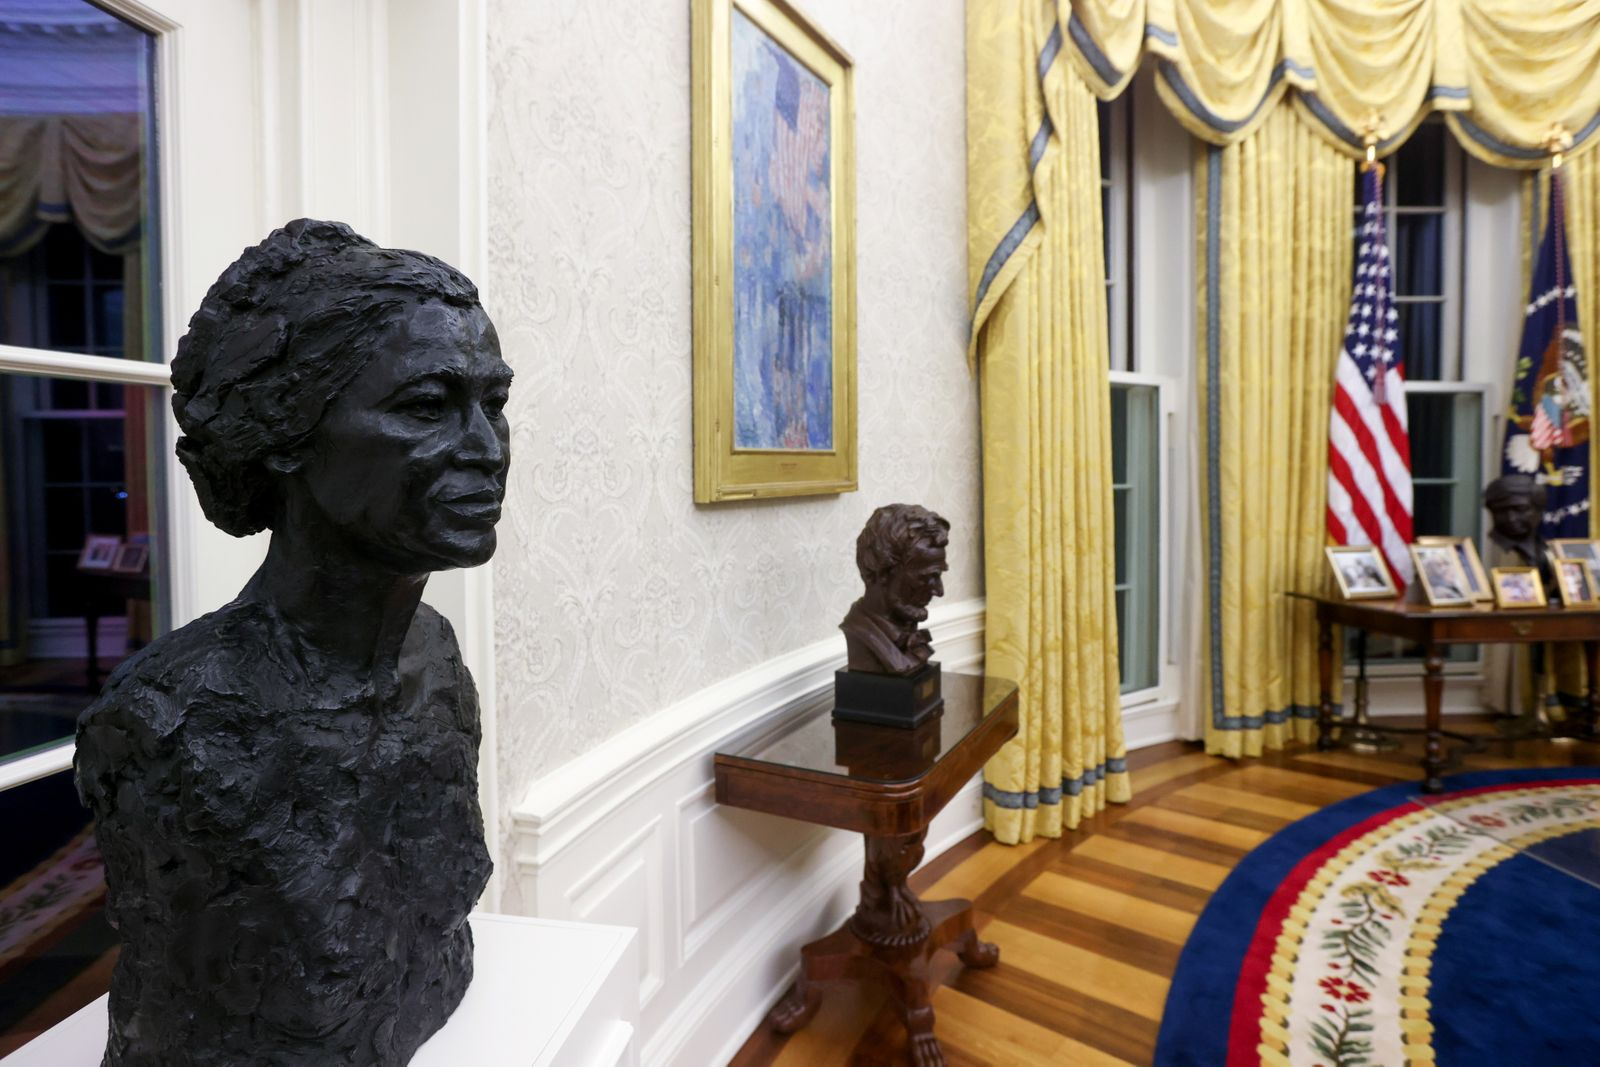 A general view shows President Biden?s redecorated Oval Office at the White House in Washington